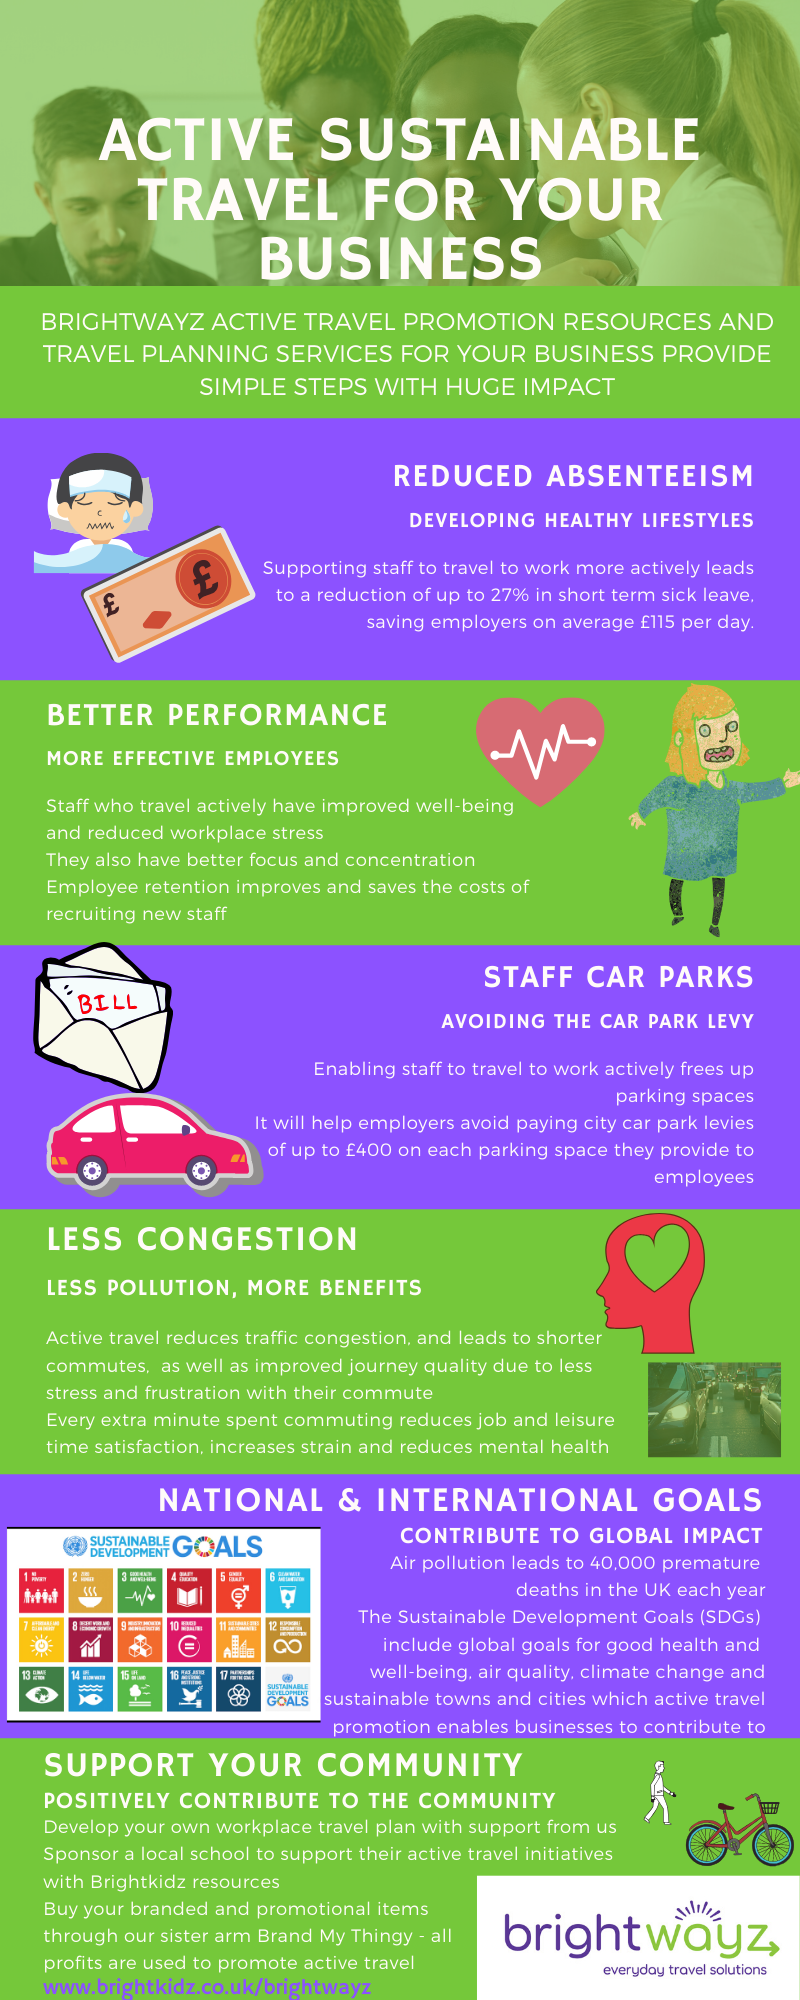 active sustainable travel for business infographic